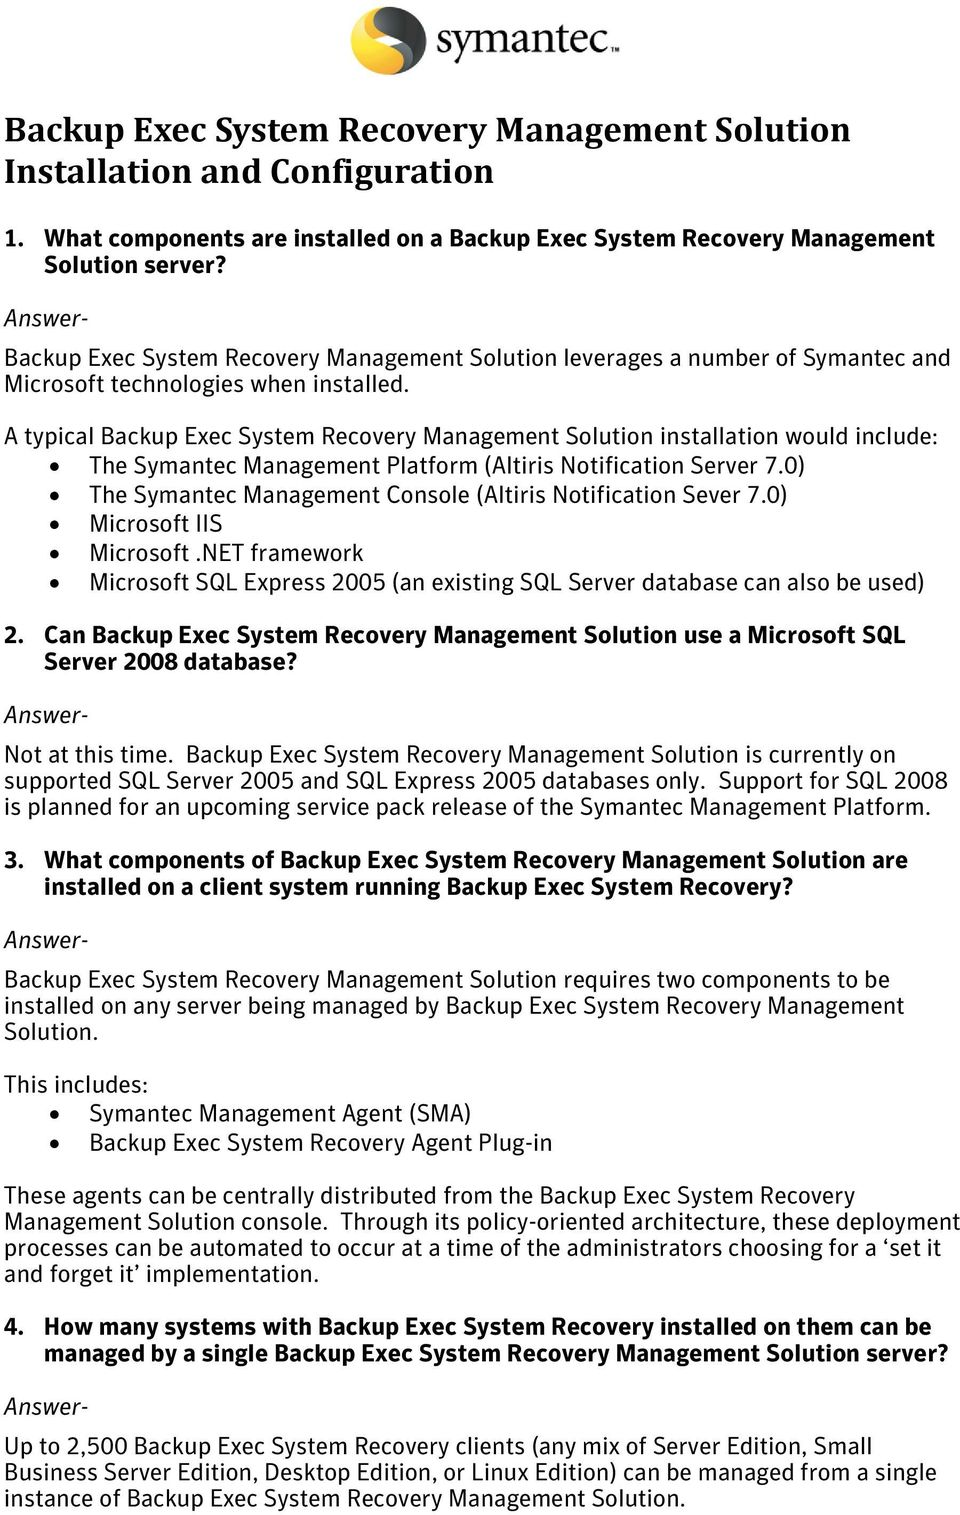 A typical Backup Exec System Recovery Management Solution installation would include: The Symantec Management Platform (Altiris Notification Server 7.